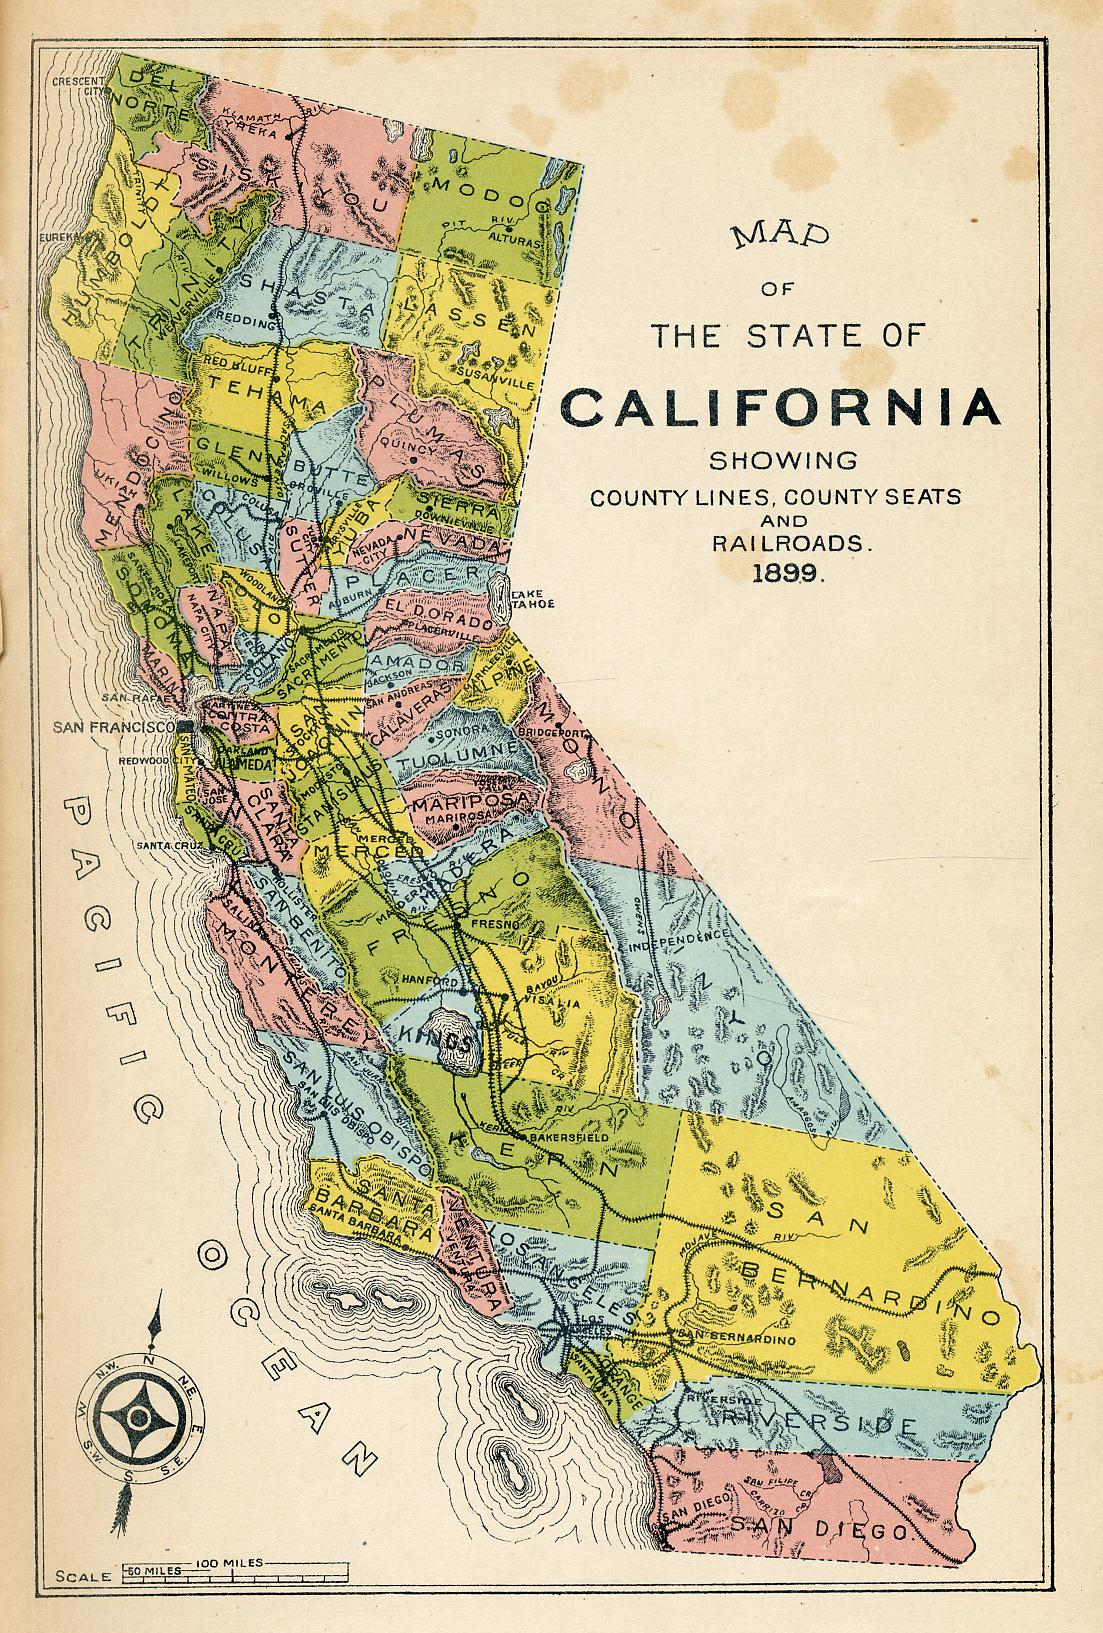 California Gold Rush Map Collection - High Country Gold on z nation map, underground railroad map, the great train robbery map, mining map, the revolution map, gold trade map, klondike map, grand canyon map, gold at sutter's mill, colonial expansion map, alaska map, the 100 map, compromise of 1850 map, gold mining tools, mexican cession map, world copper mine map, missouri compromise map, us gold map, manifest destiny map, gold production map,